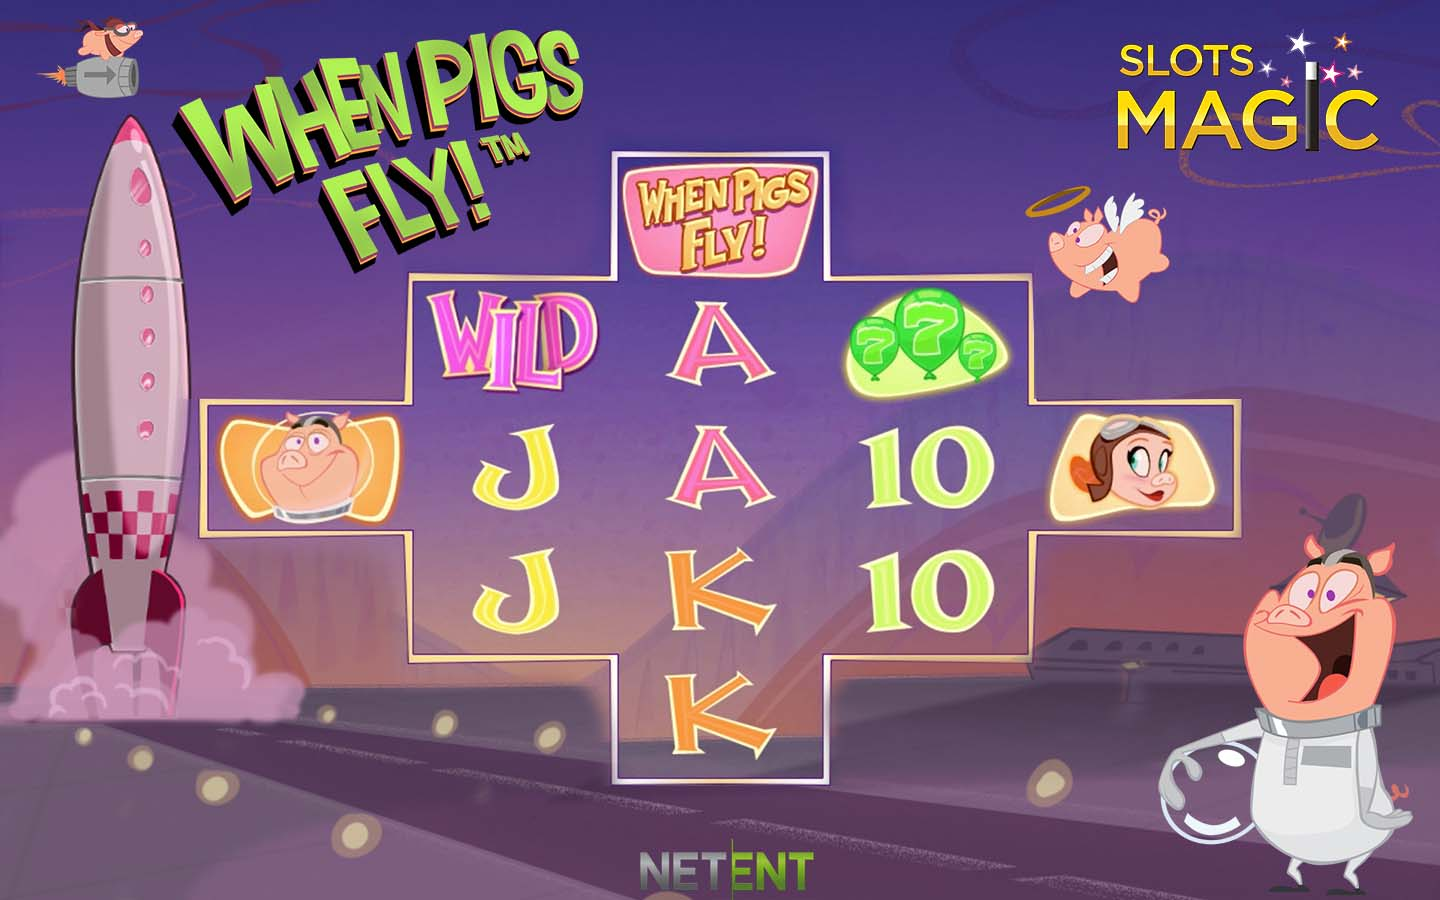 When Pigs Fly at Slots Magic casino